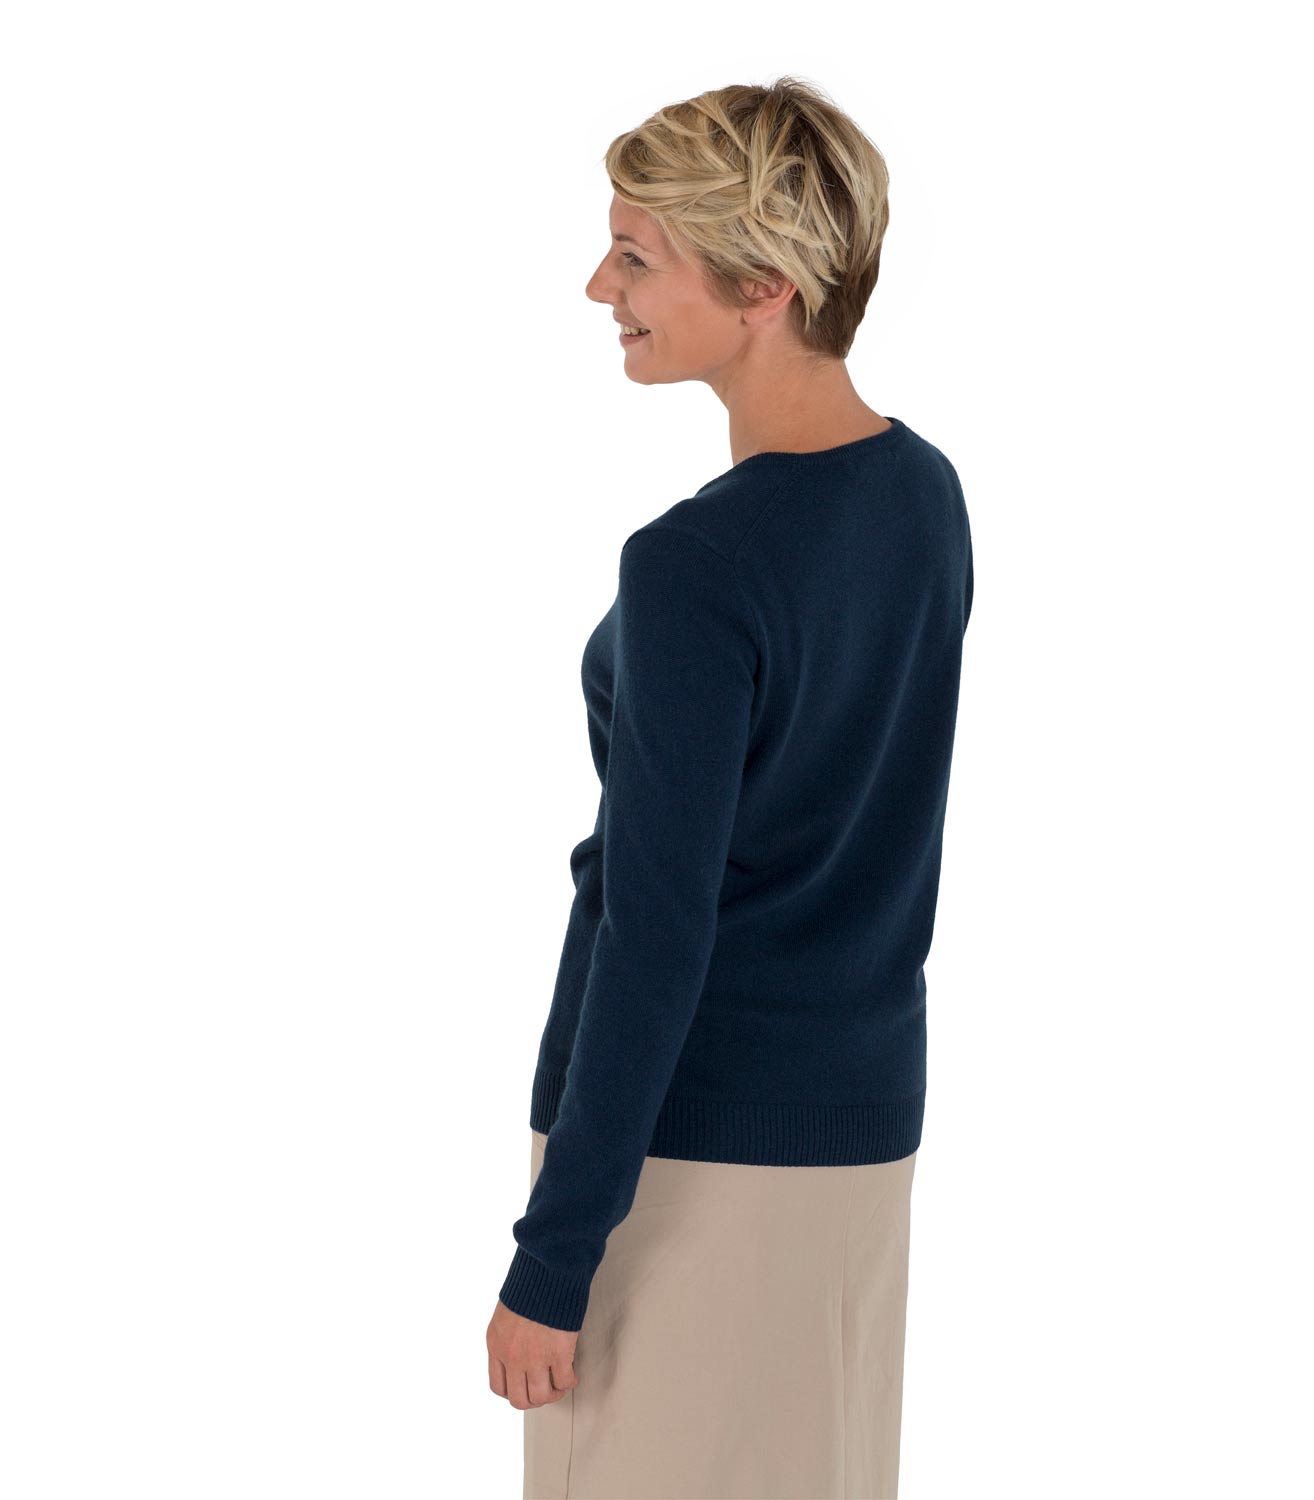 WoolOvers Womens Ladies New Cashmere Crew Neck Jumper Sweater ...